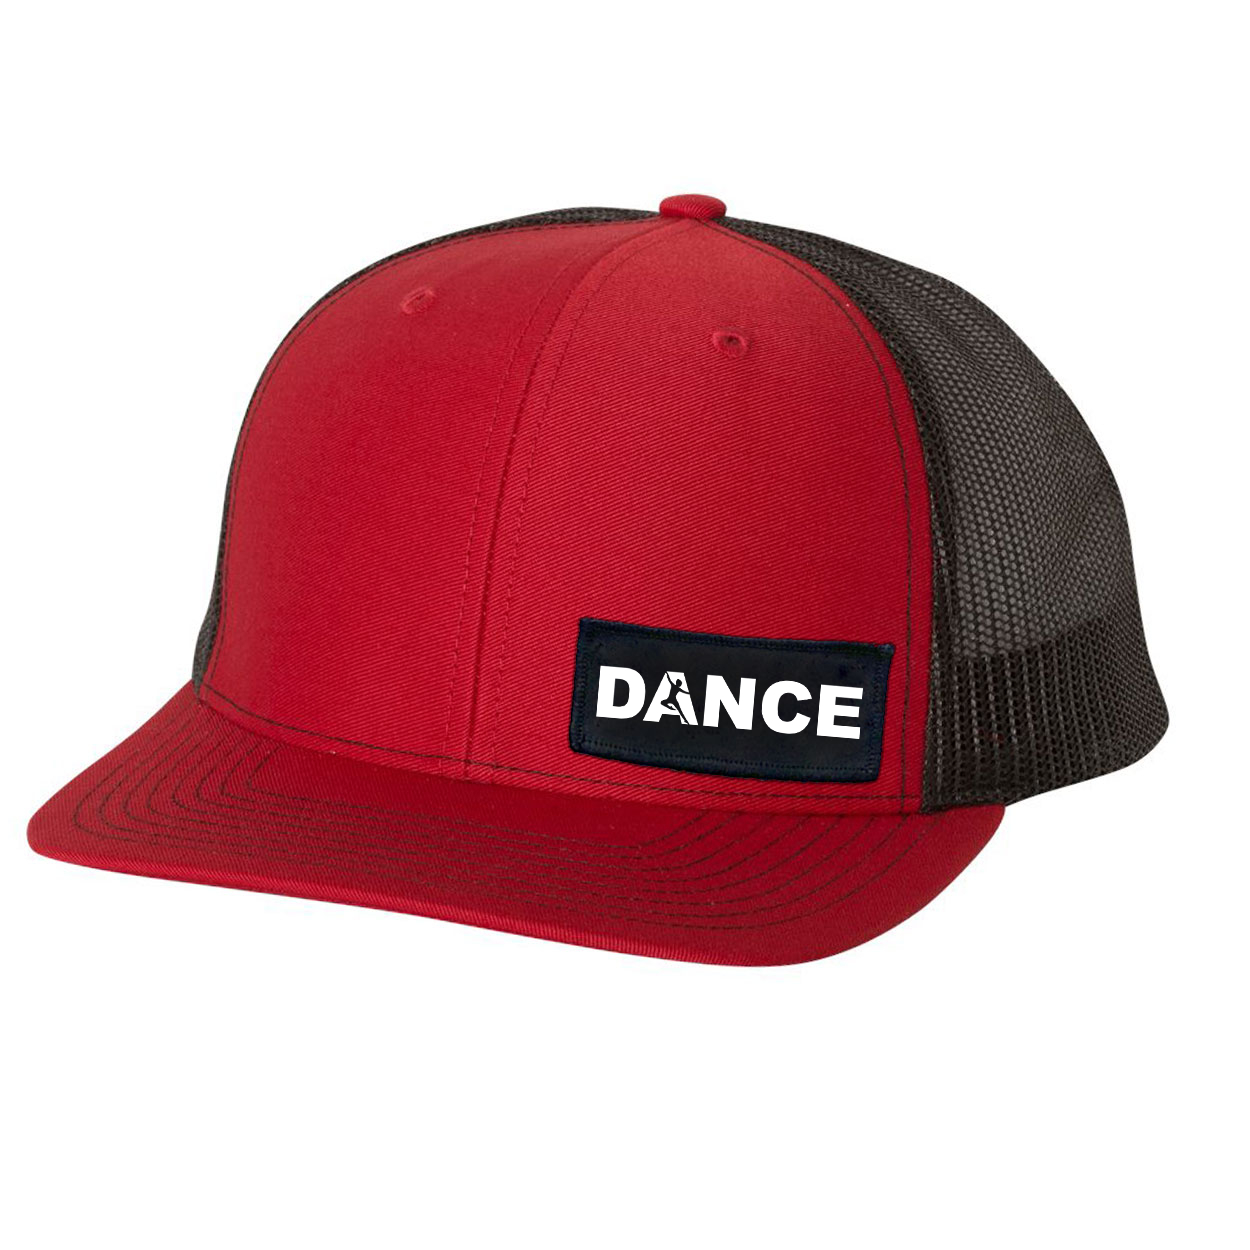 Dance Silhouette Logo Night Out Woven Patch Snapback Trucker Hat Red/Black (White Logo)